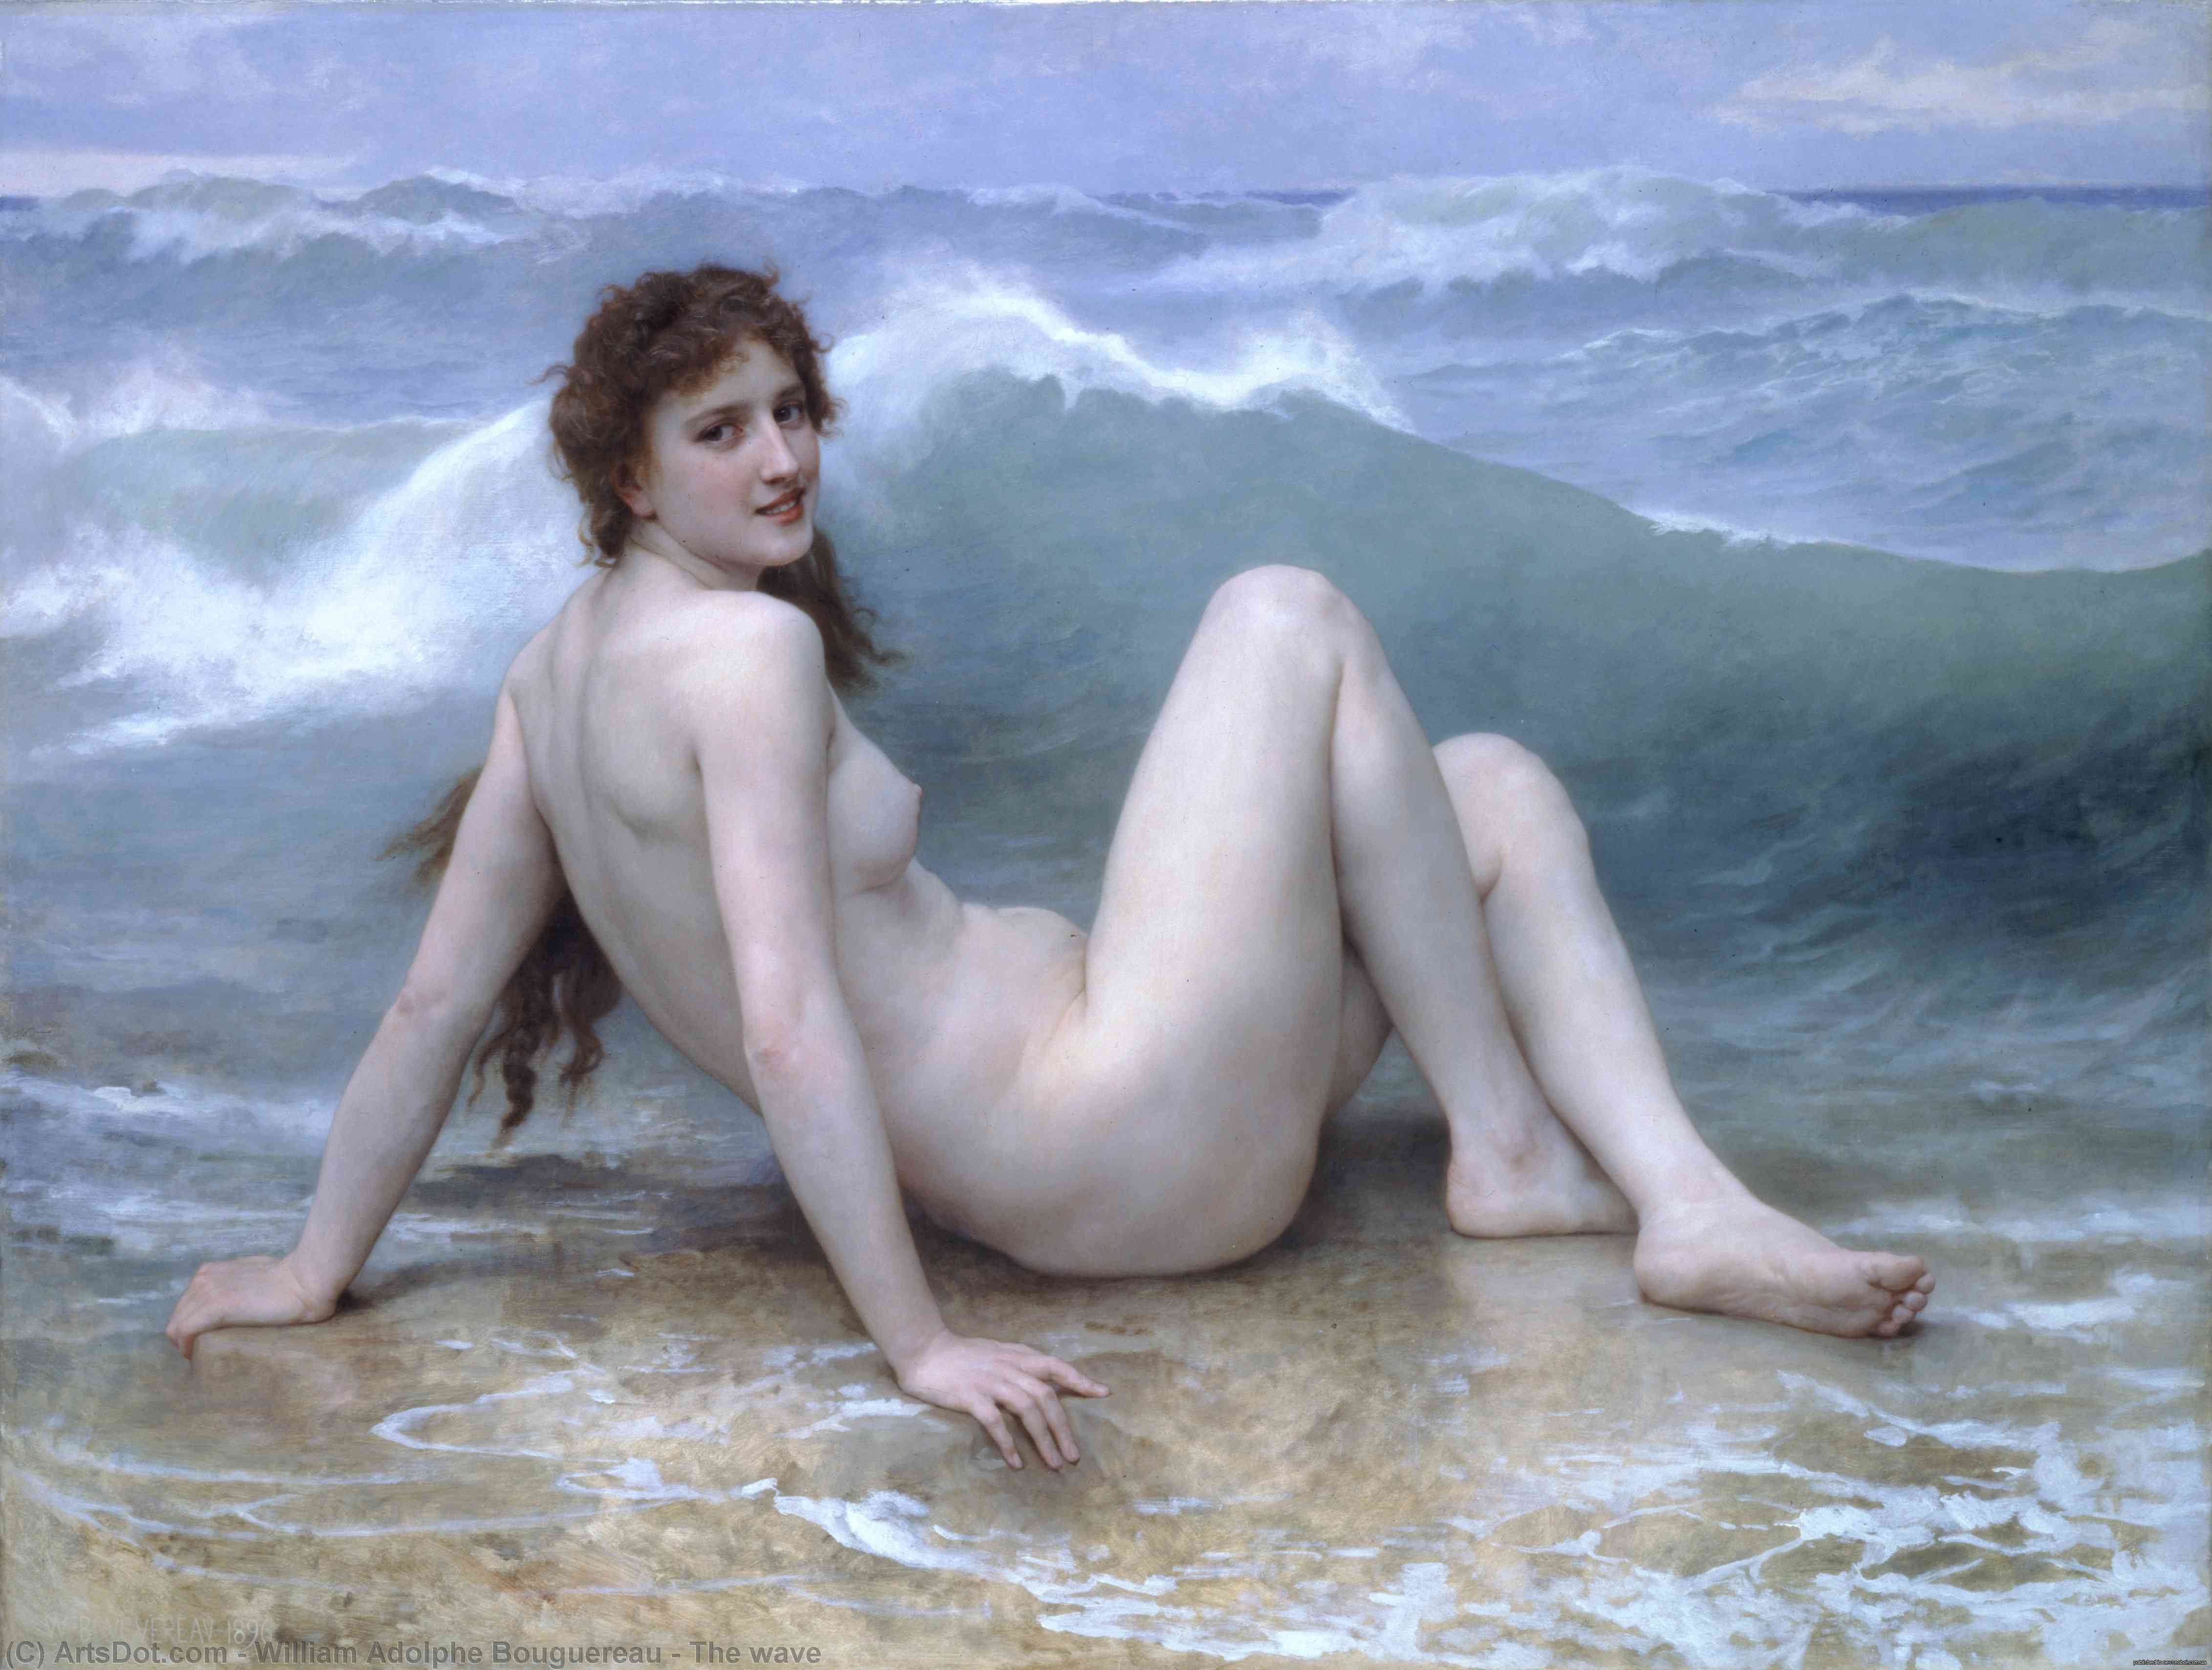 The wave, 1896 by William Adolphe Bouguereau (1825-1905, France) | Art Reproductions William Adolphe Bouguereau | ArtsDot.com